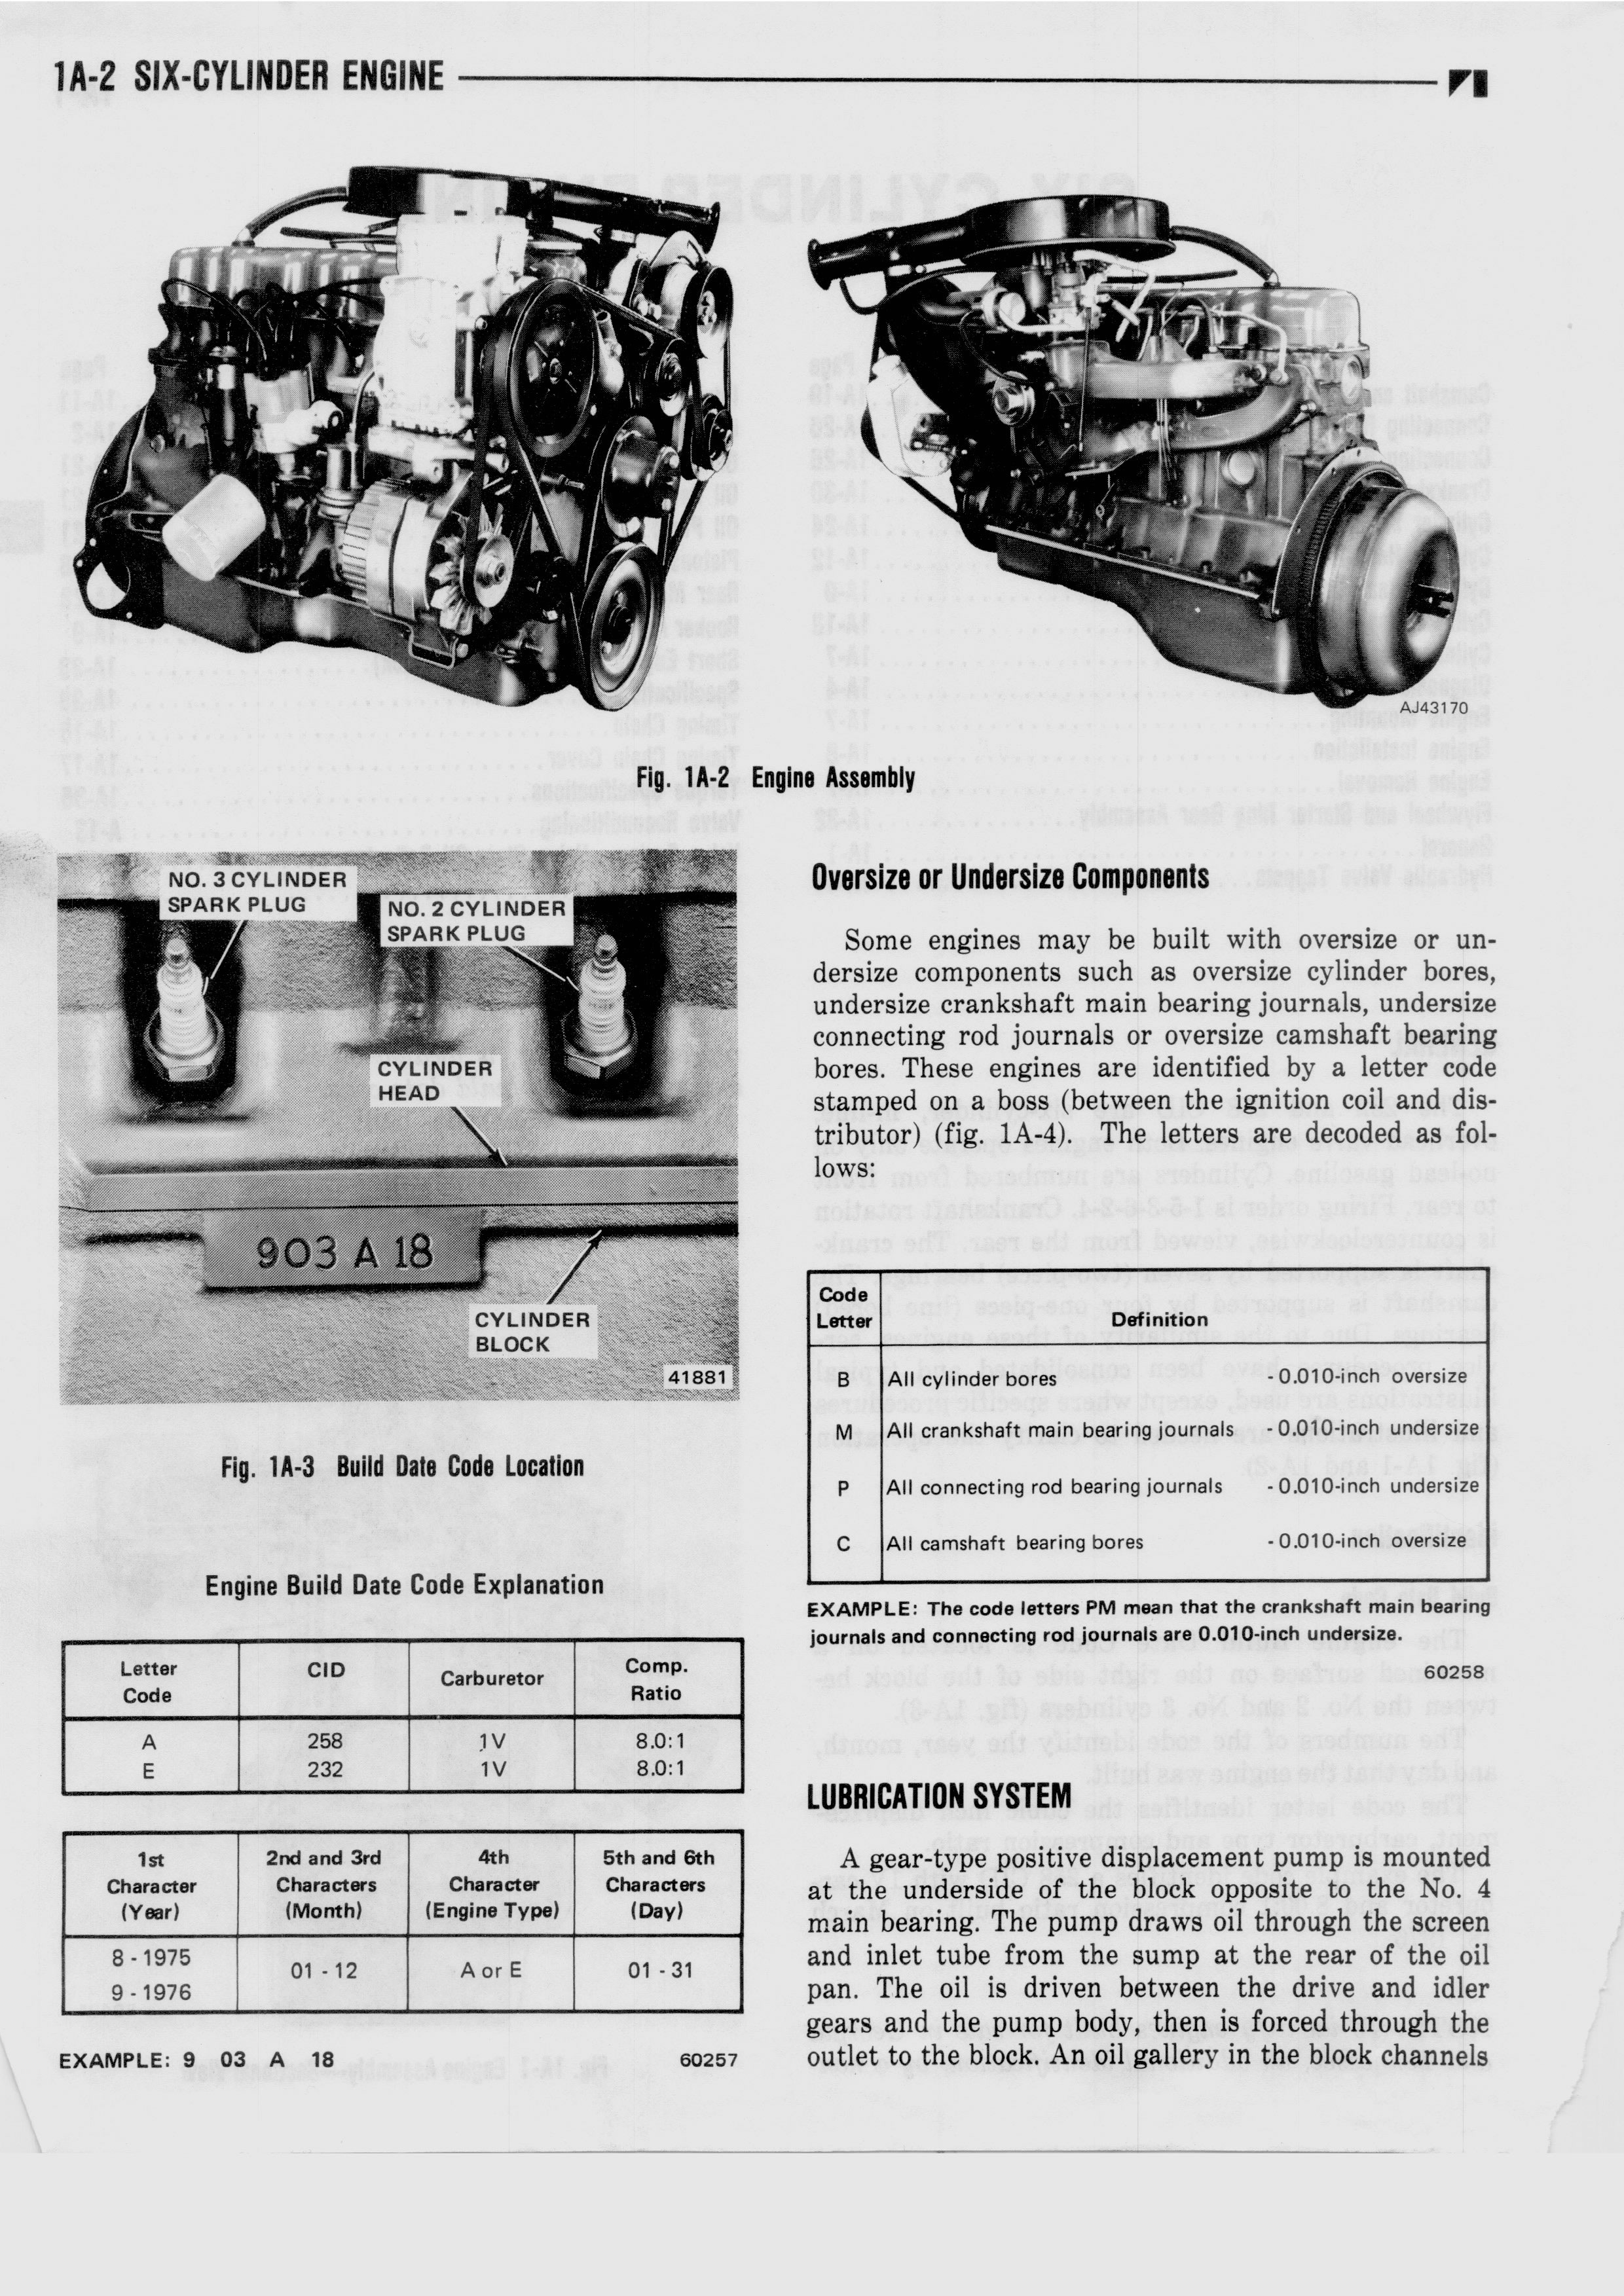 1A Six Cylinder Engine / 1976 AMC Technical Service Manual